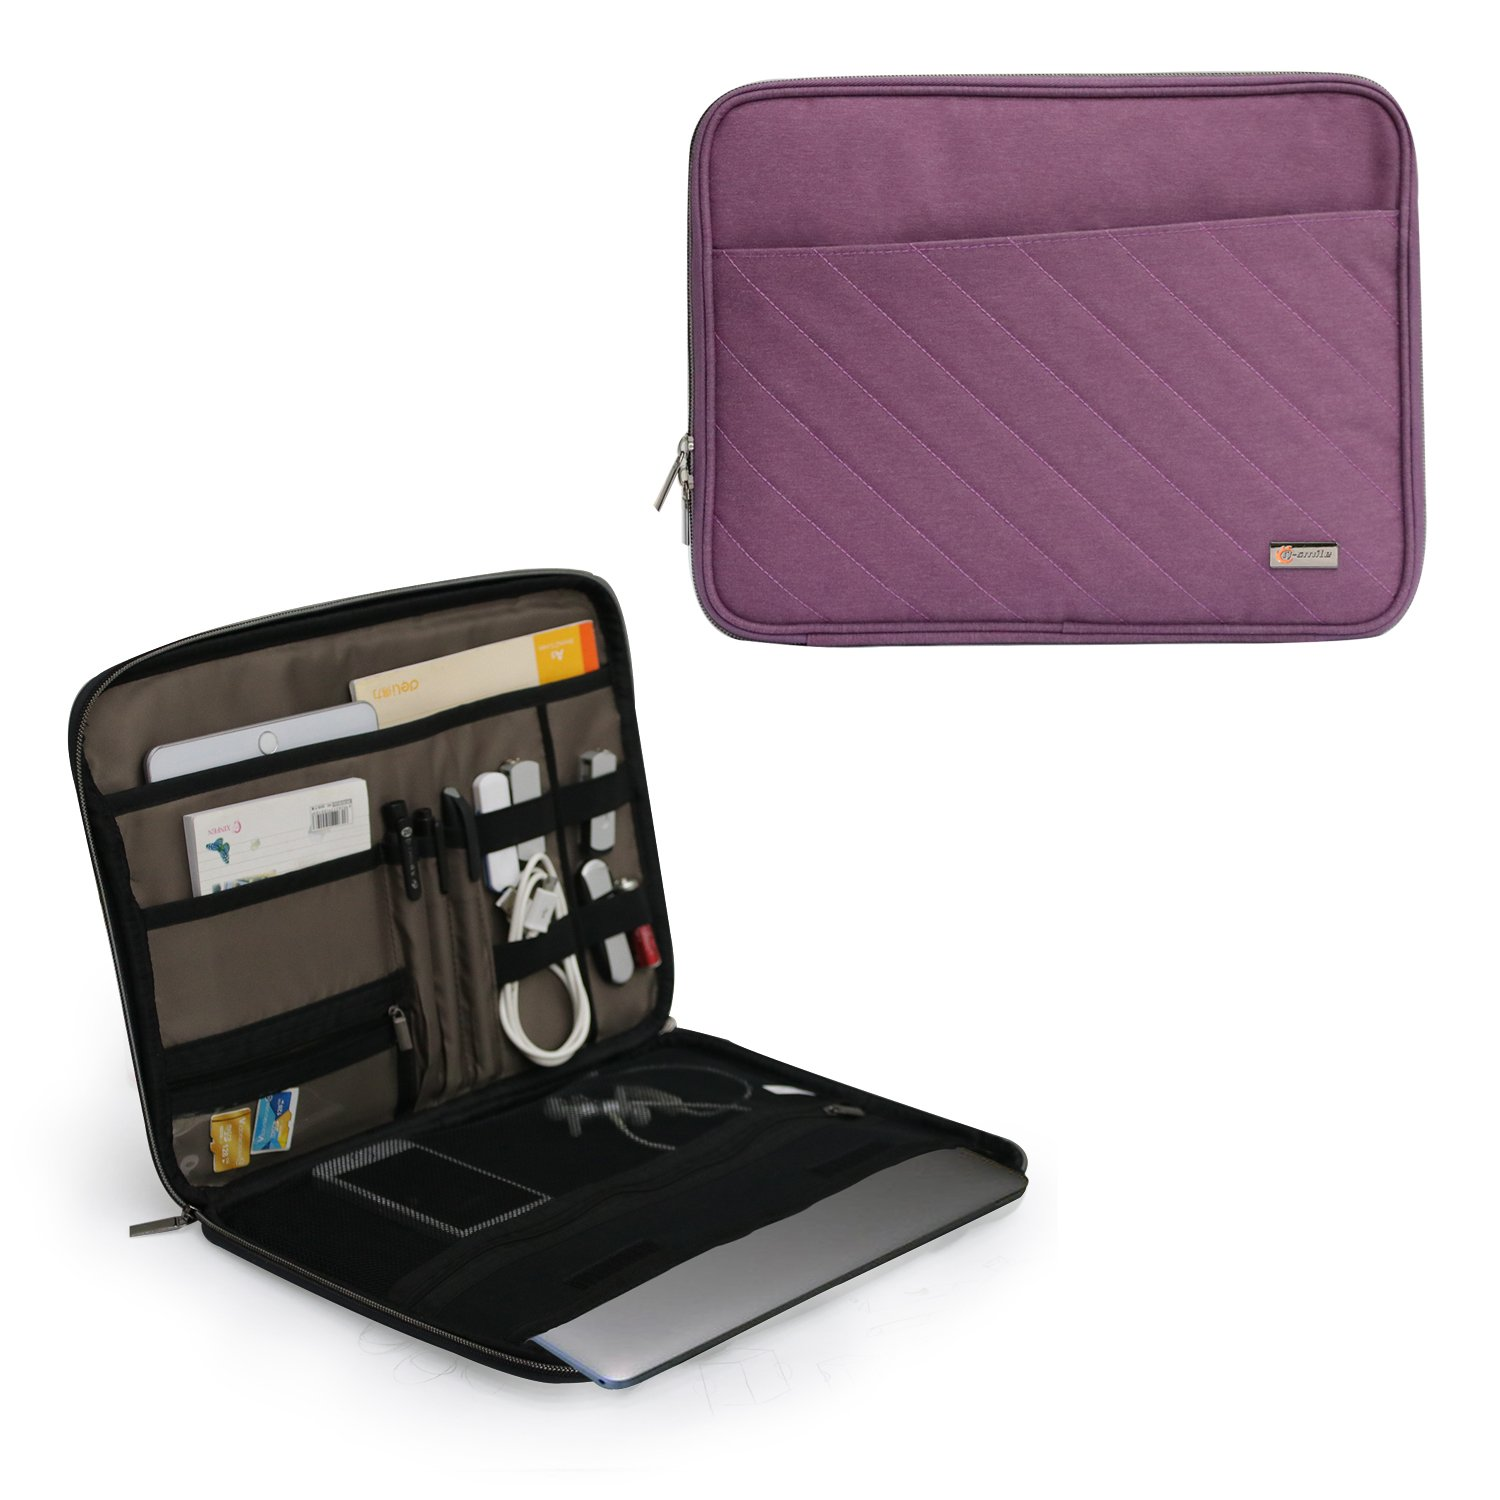 Q-Smile 13.5 Inch Laptop Tablet Sleeve Case Water-Resistant Electronic Accessories Organizer Bag (Purple)